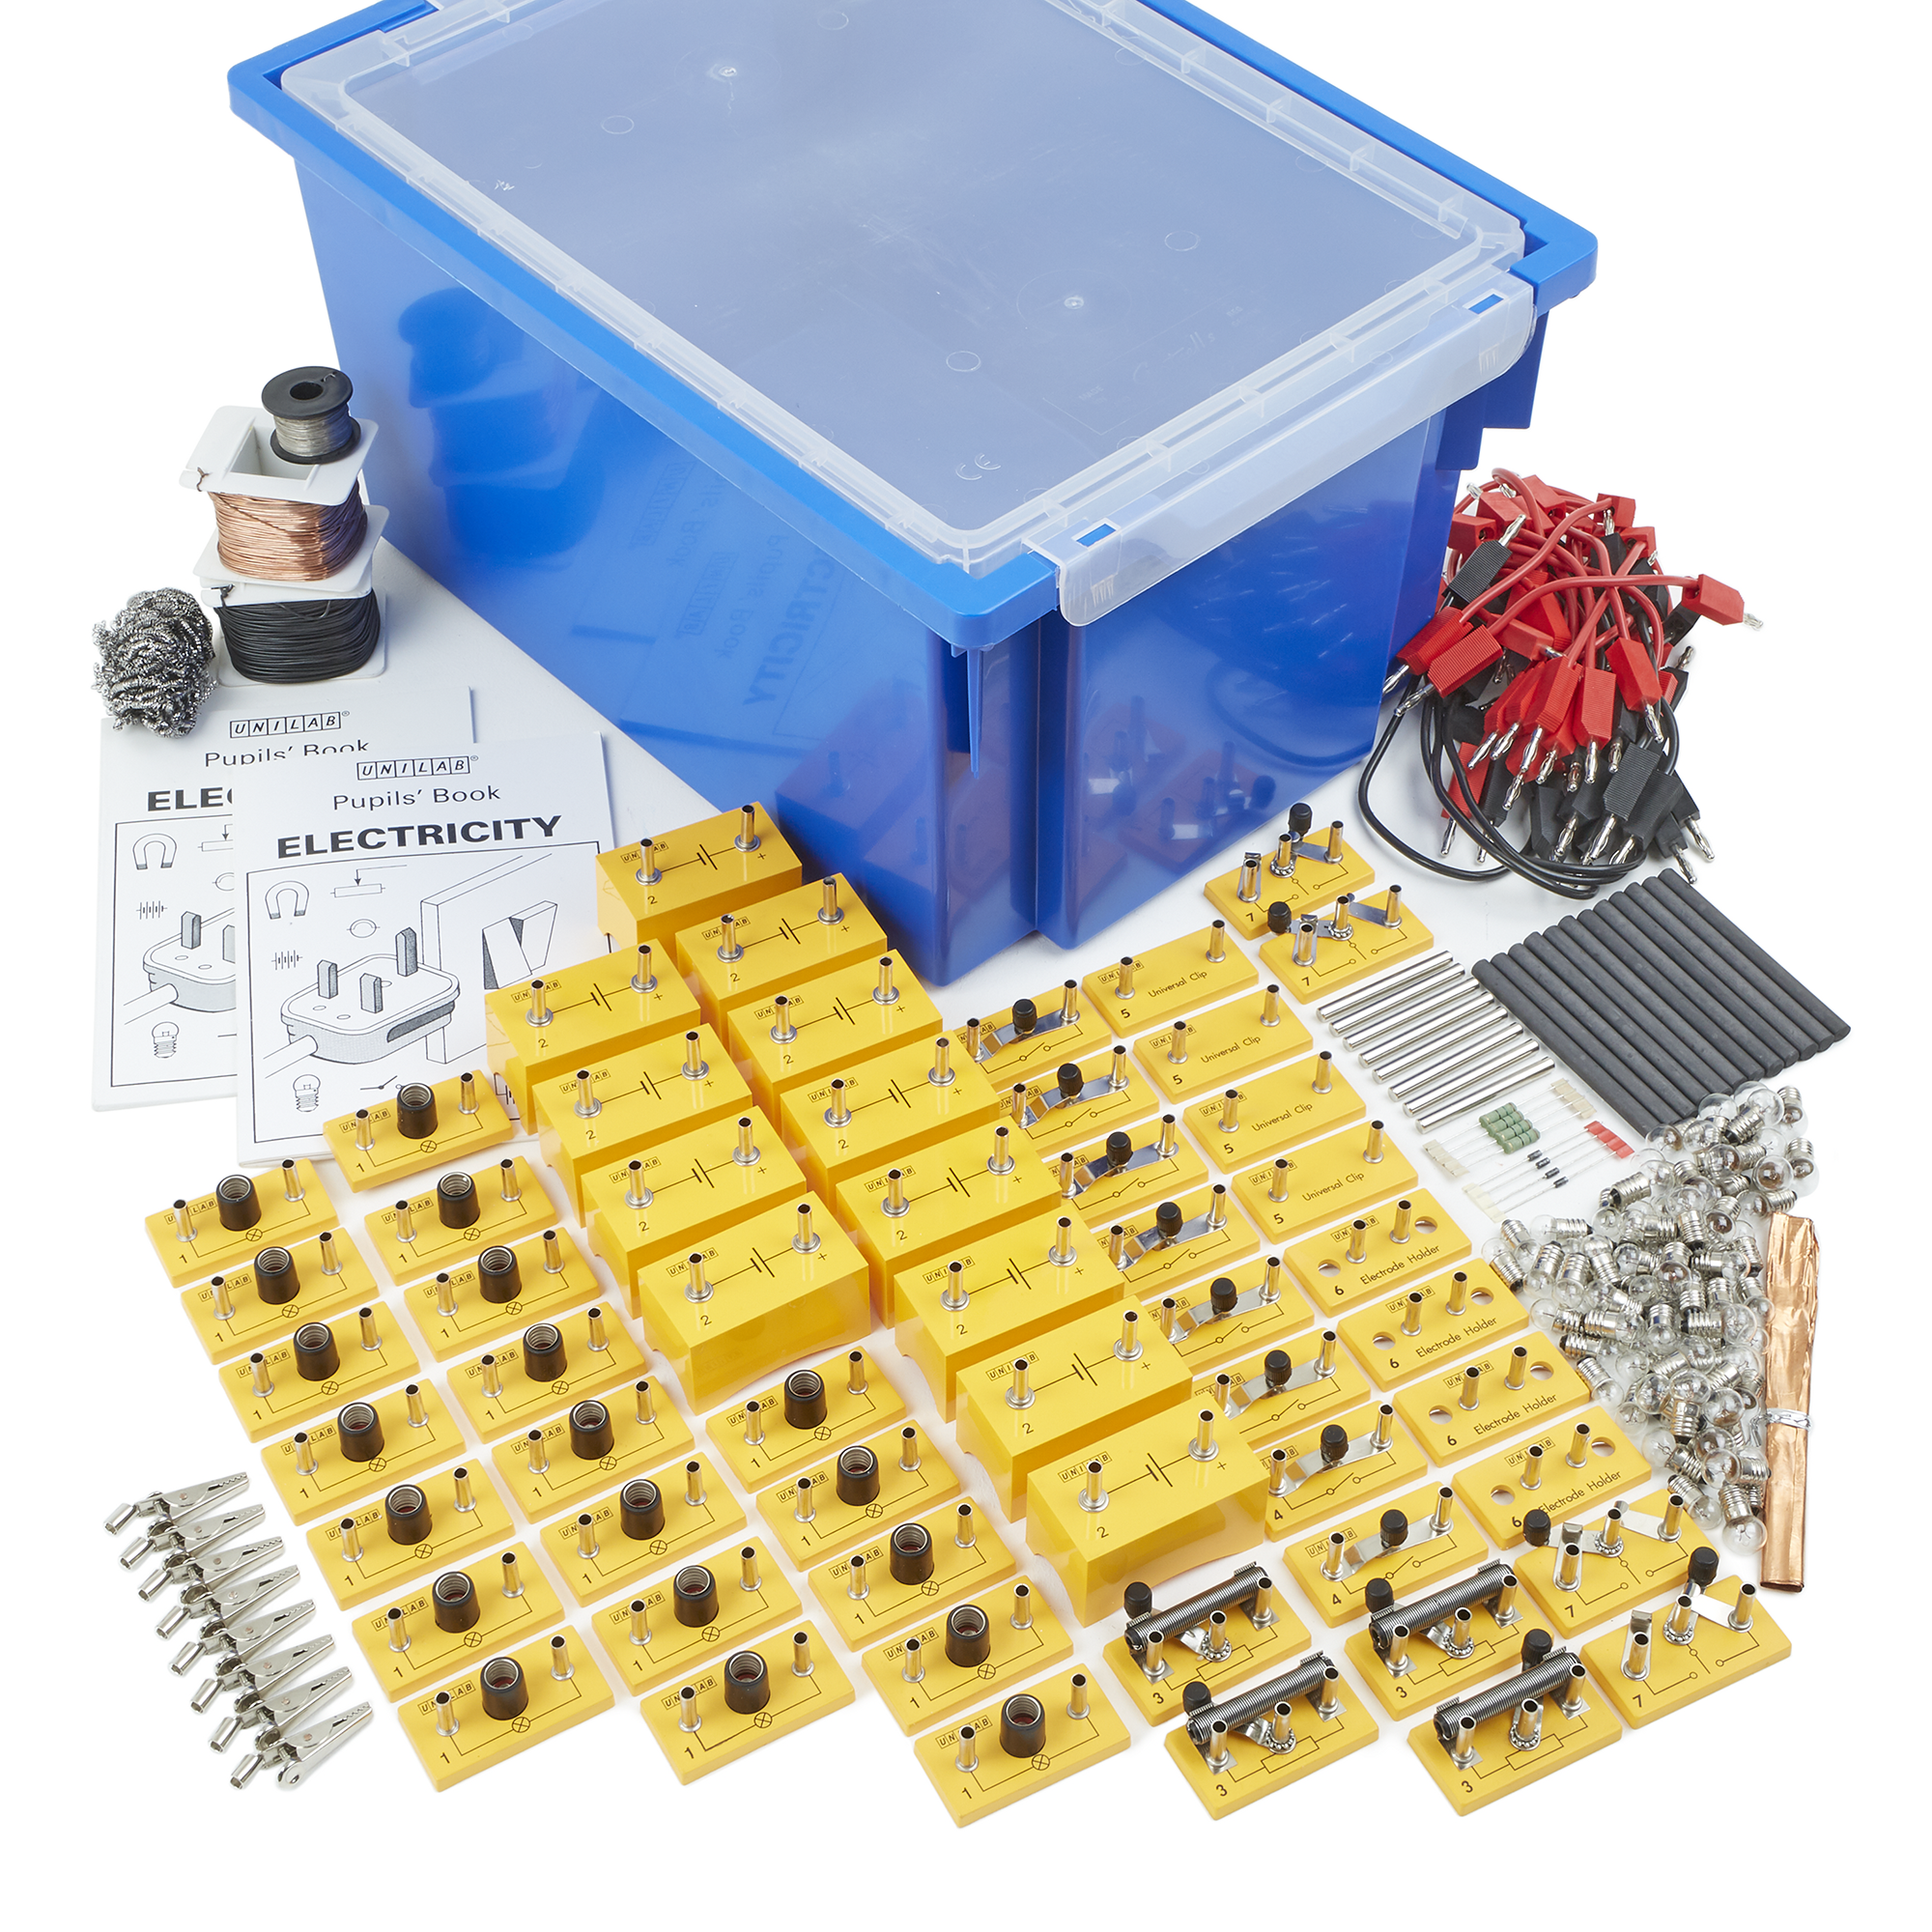 Basic Electrical Kits For Students Ask Answer Wiring Diagram Test Questions Product Findel International Rh Com Diagrams